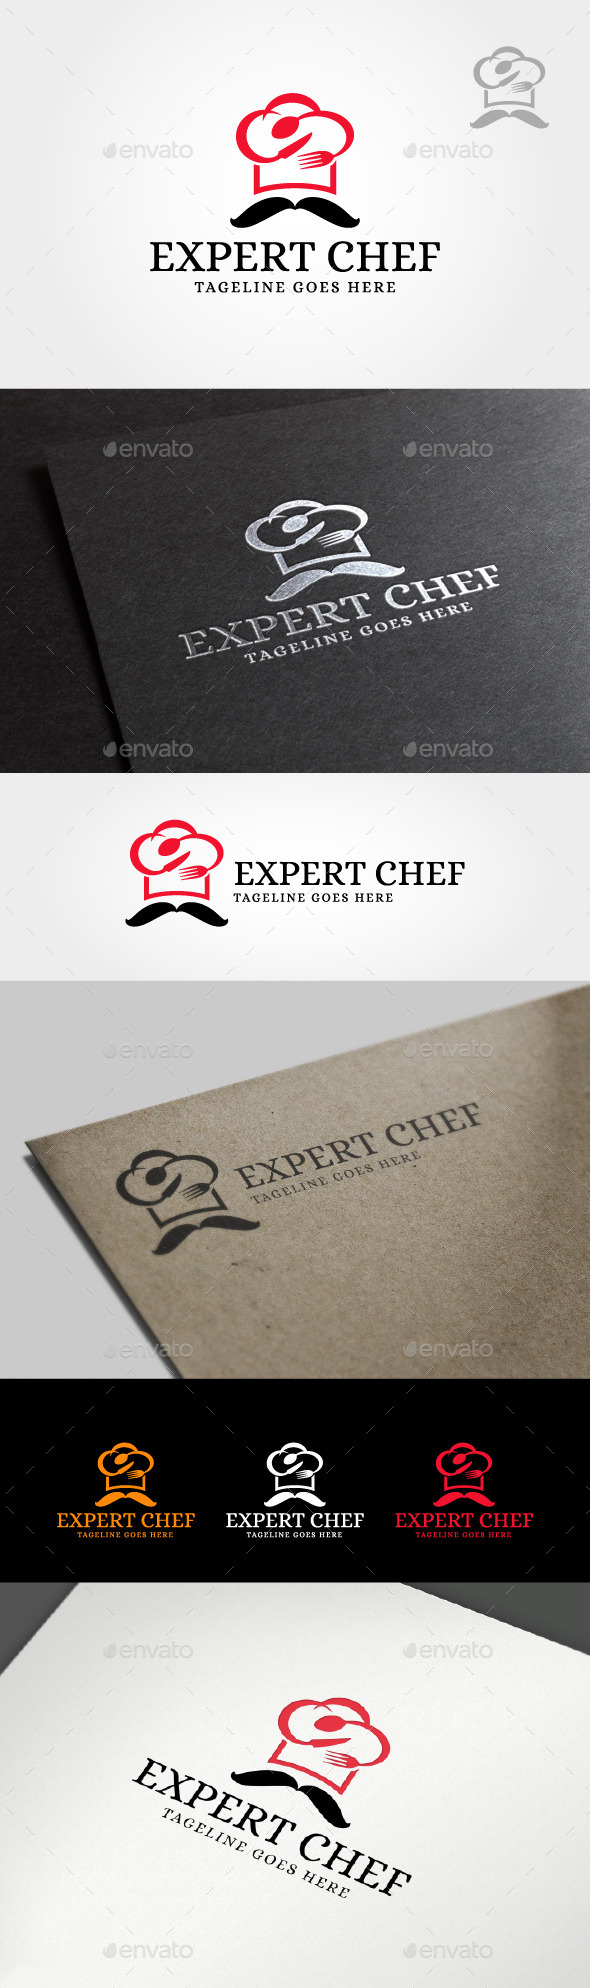 GraphicRiver Expert Chef 11256498